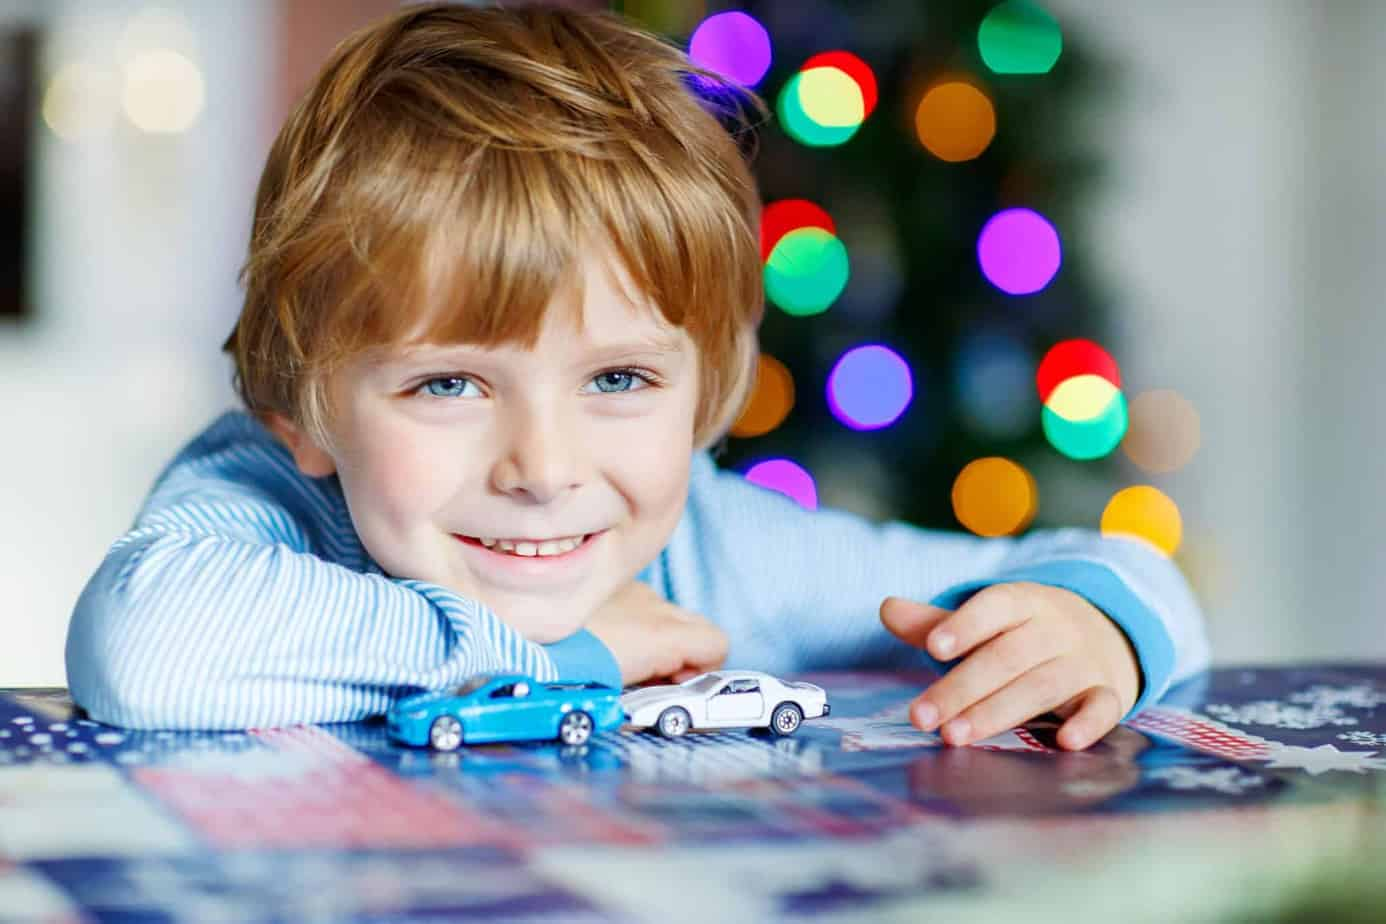 create a race track with tape and drive matchbox cards on the roads and cities that kids create as a great quiet busy playtime